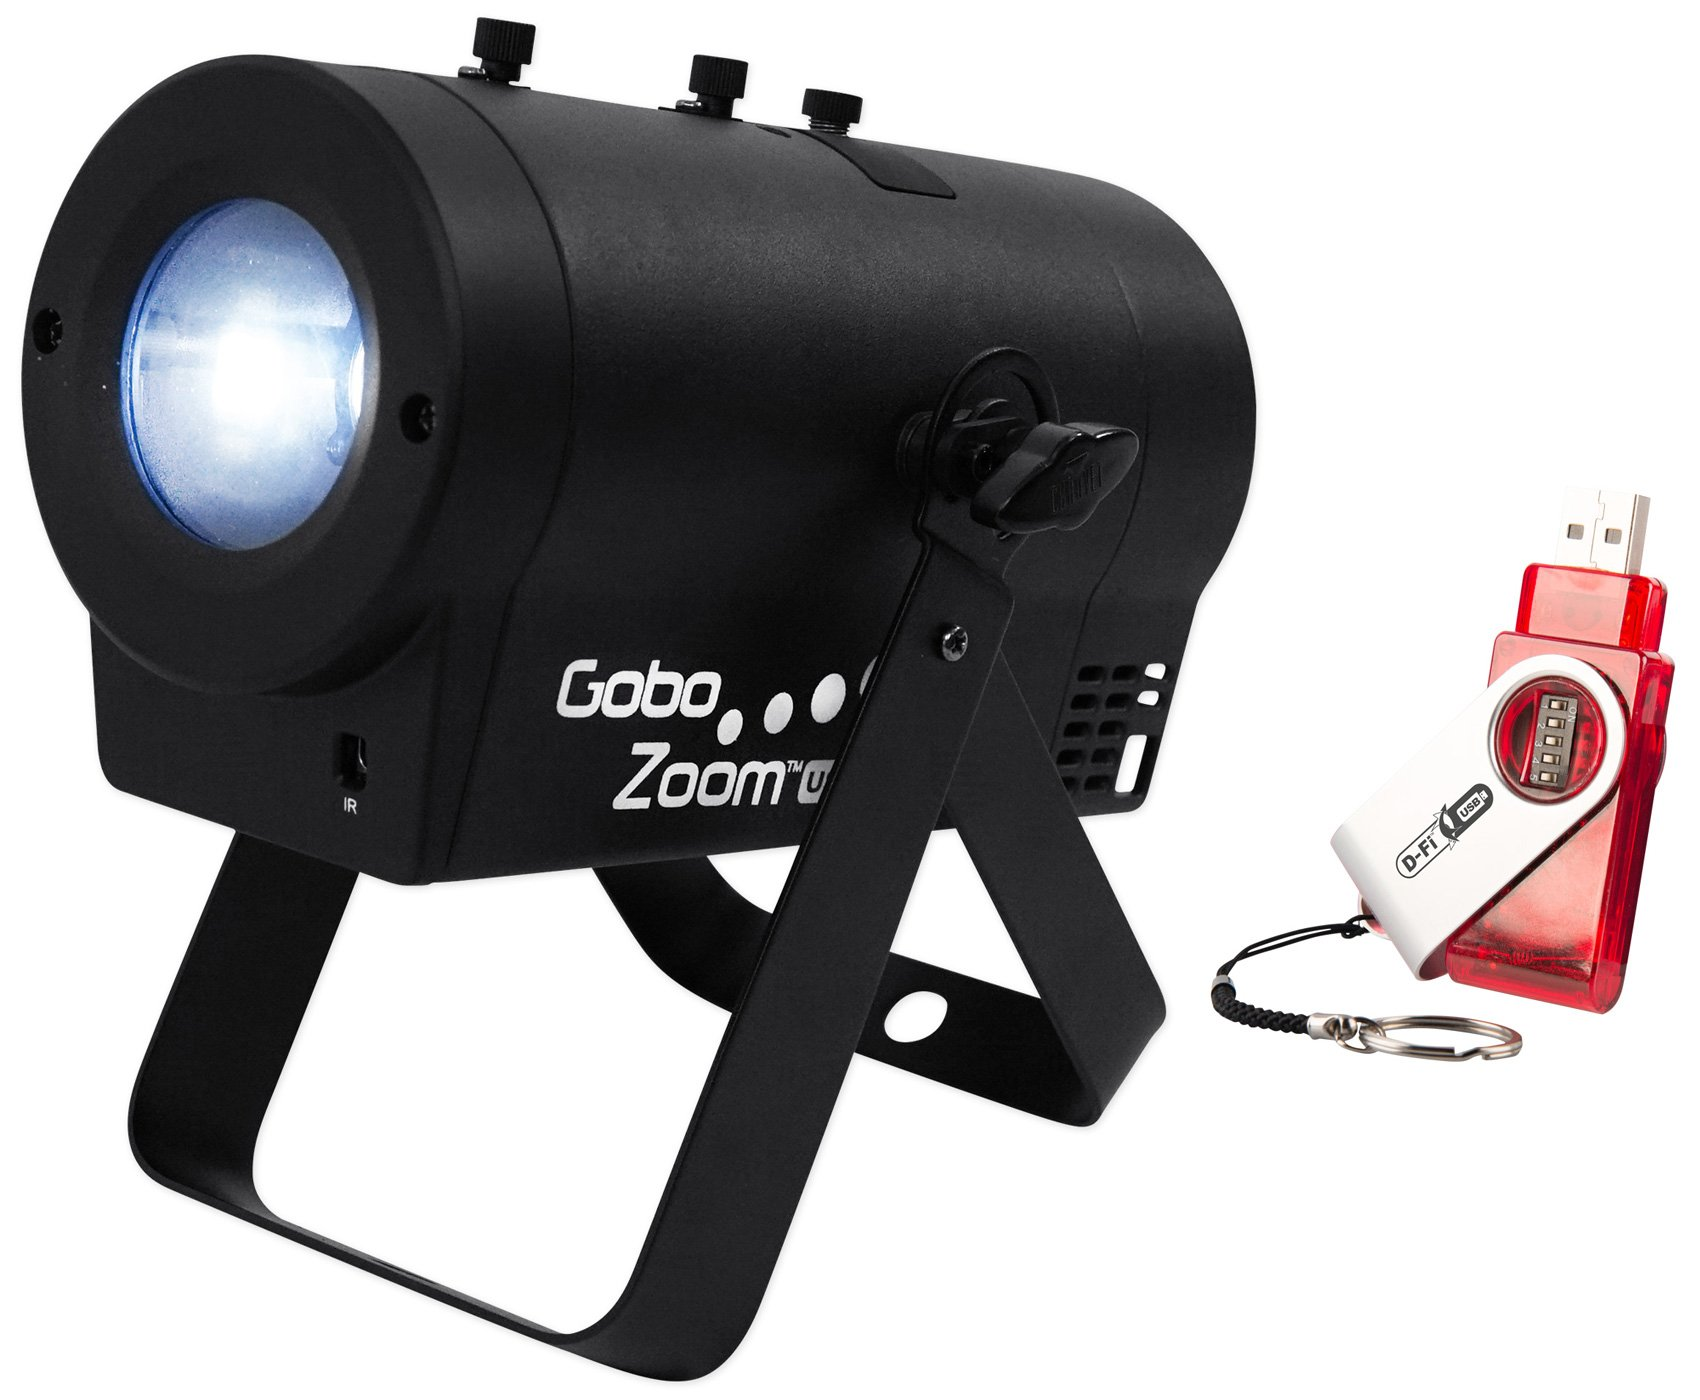 Package: Chauvet DJ Gobo Zoom USB Compact Custom Gobo Projector Light With 10 Wedding Ready Gobos + D-FI USB Ready + Chauvet DJ D-Fi USB Wireless Transceiver Controller For D-Fi Ready Lights